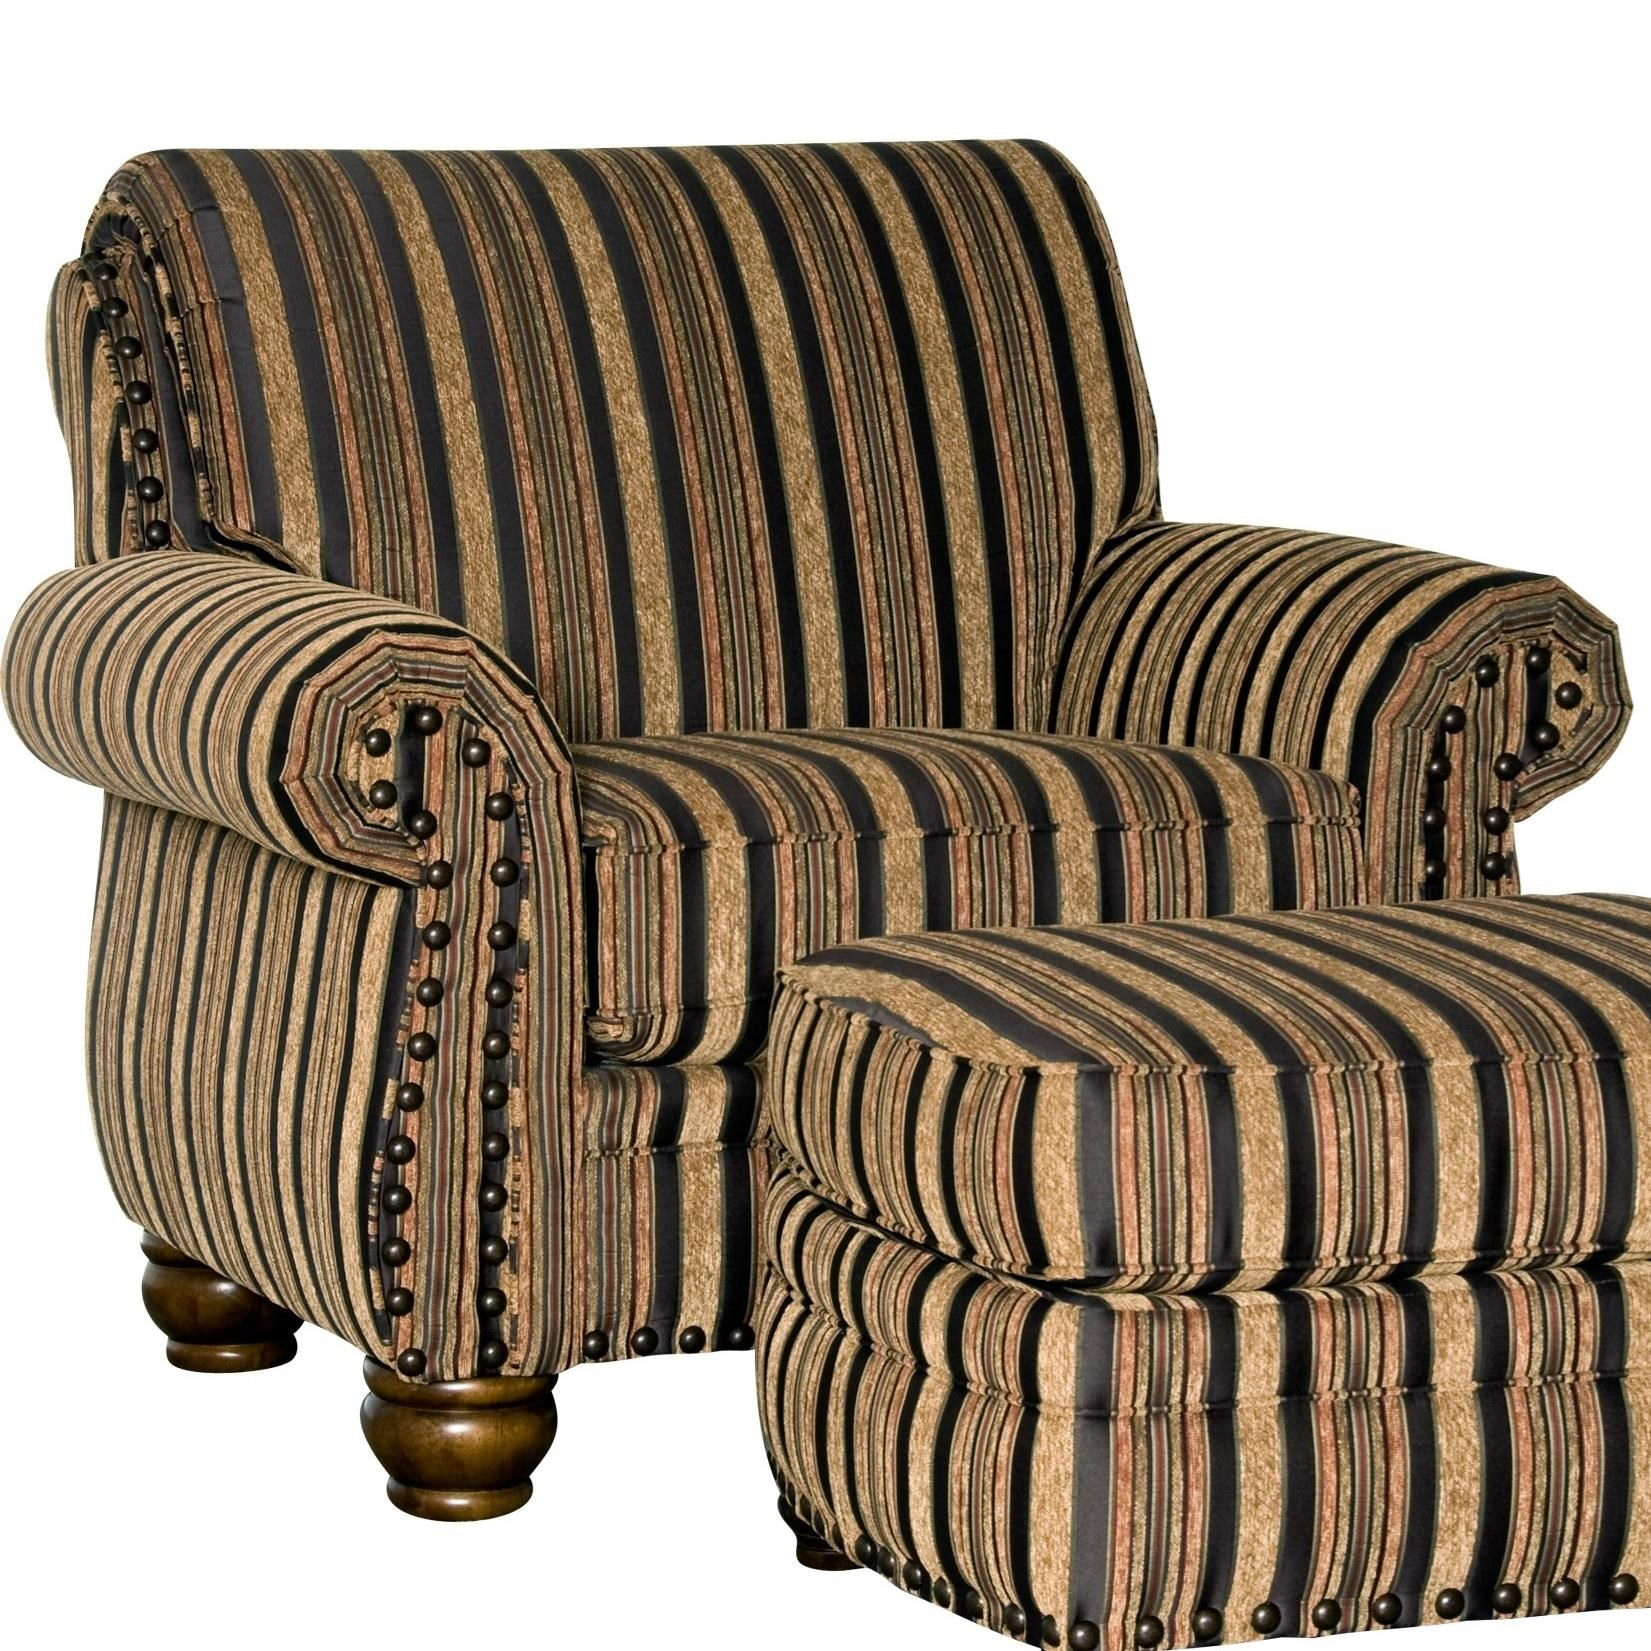 9780 Chair by Mayo at Wilcox Furniture